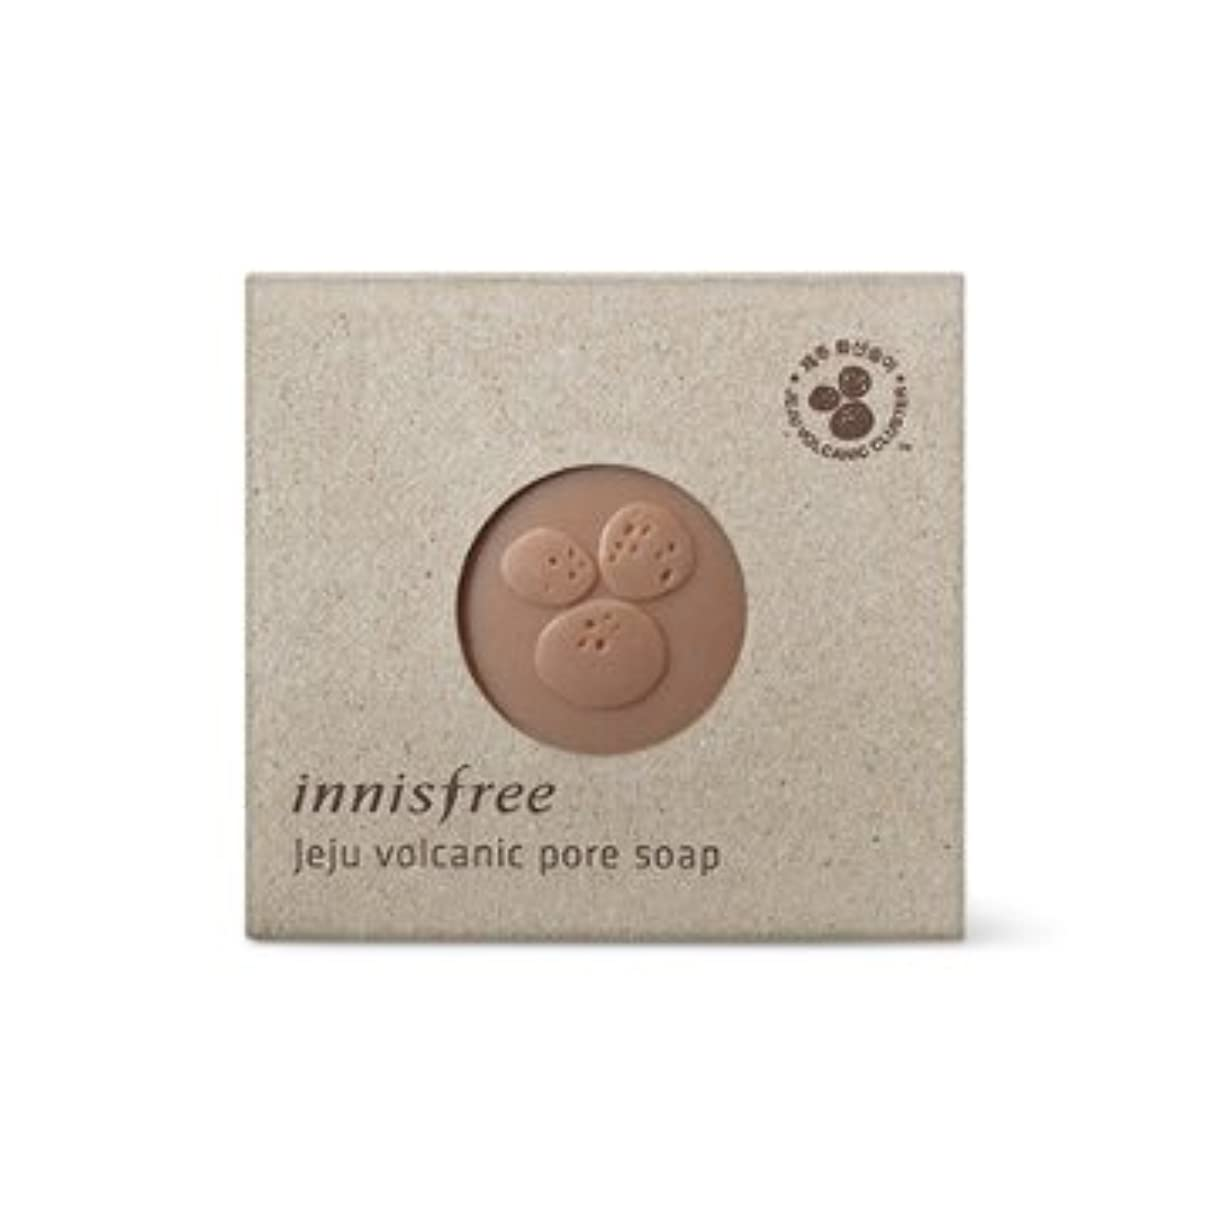 【イニスフリー】Innisfree jeju volcanic pore soap - 100g (韓国直送品) (SHOPPINGINSTAGRAM)